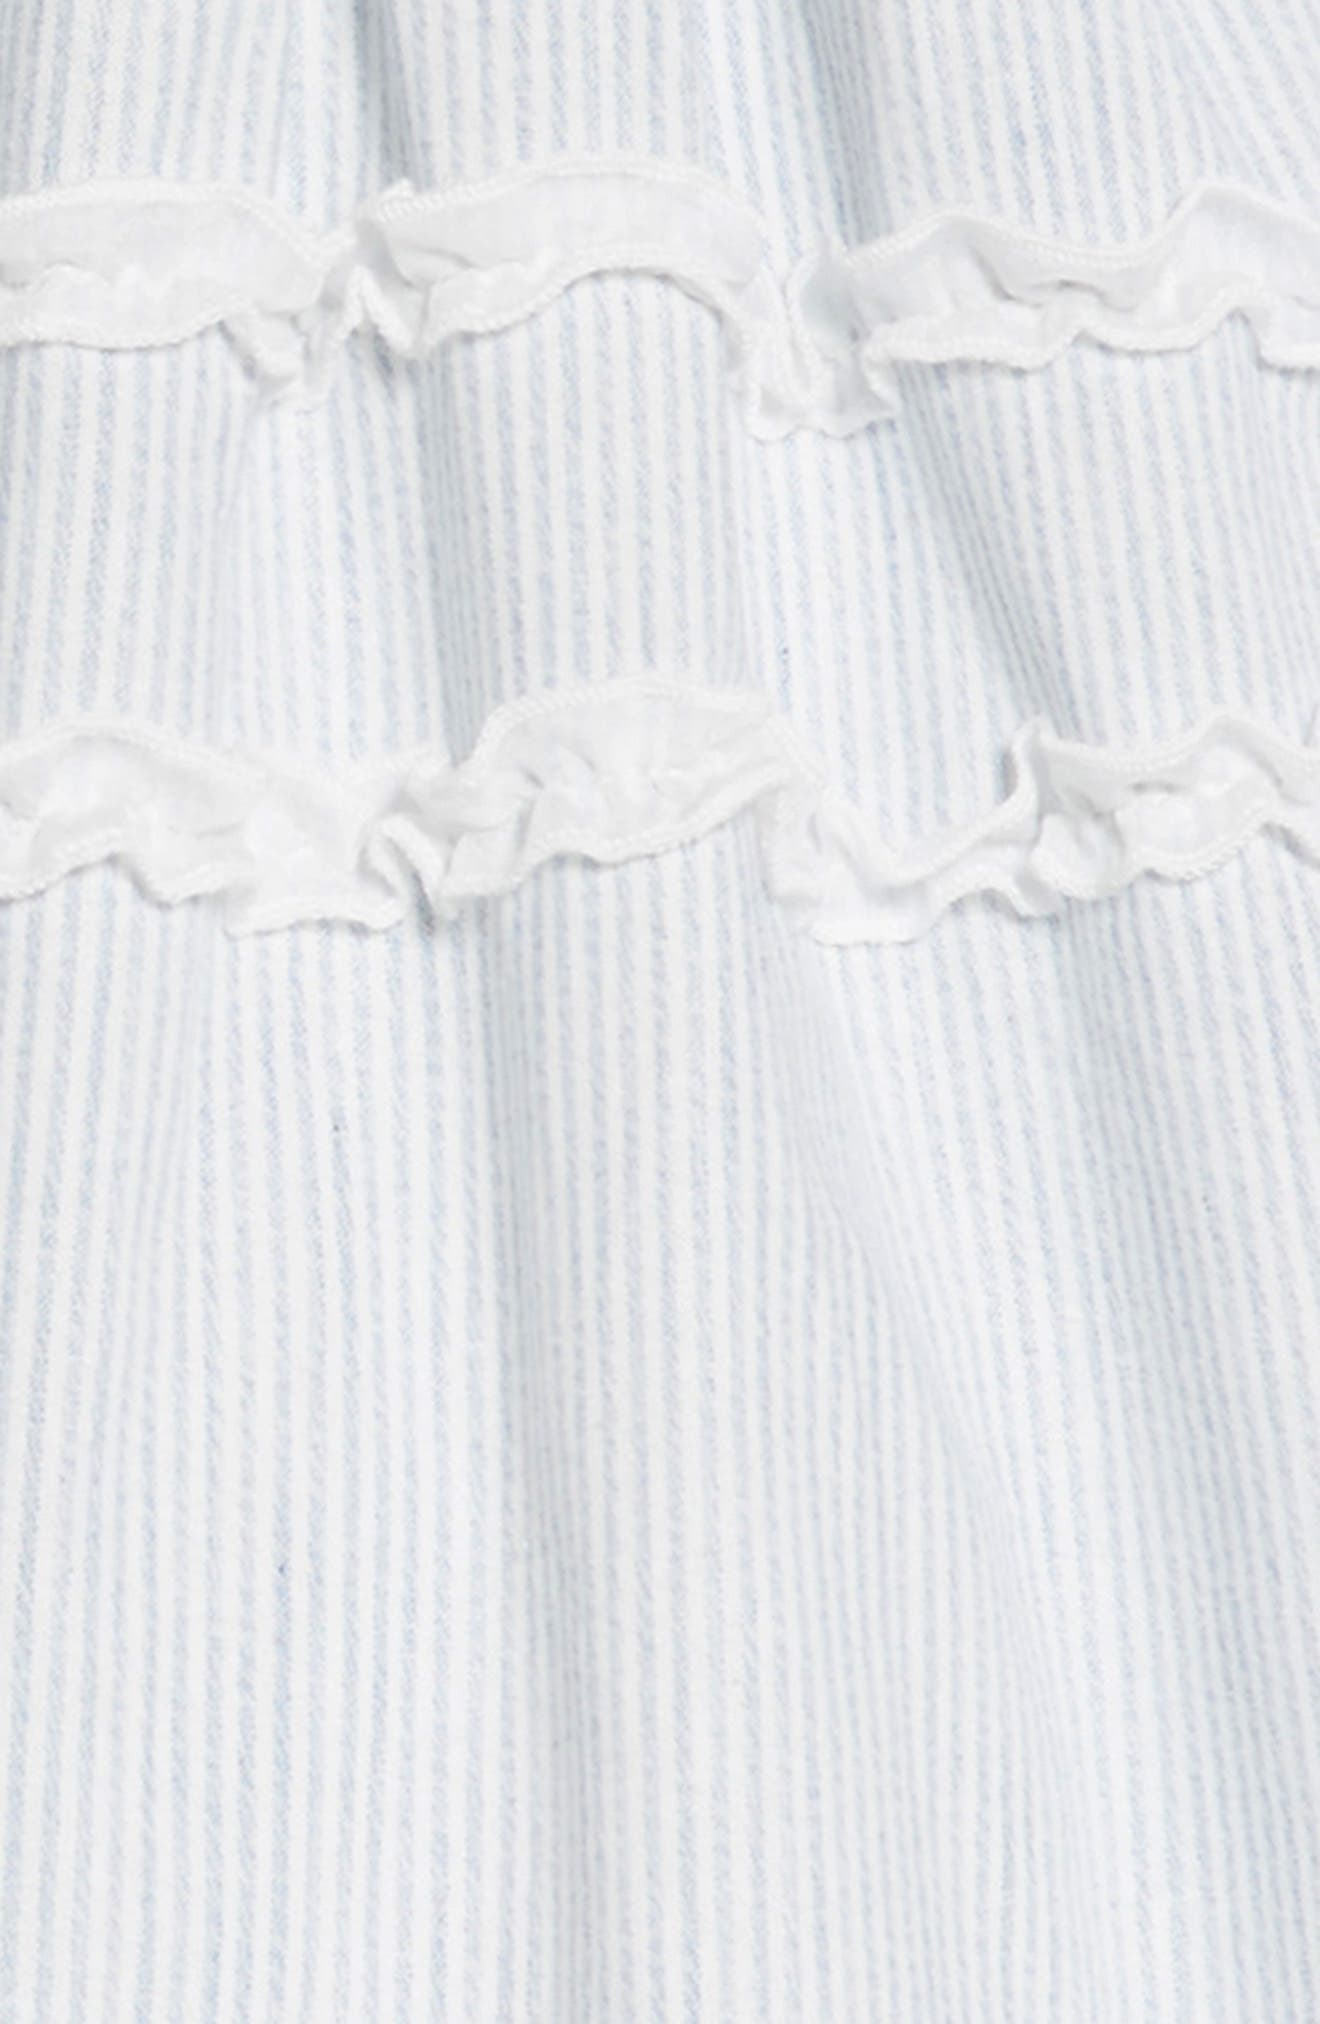 Stripe Ruffle Dress,                             Alternate thumbnail 3, color,                             Blue/ White